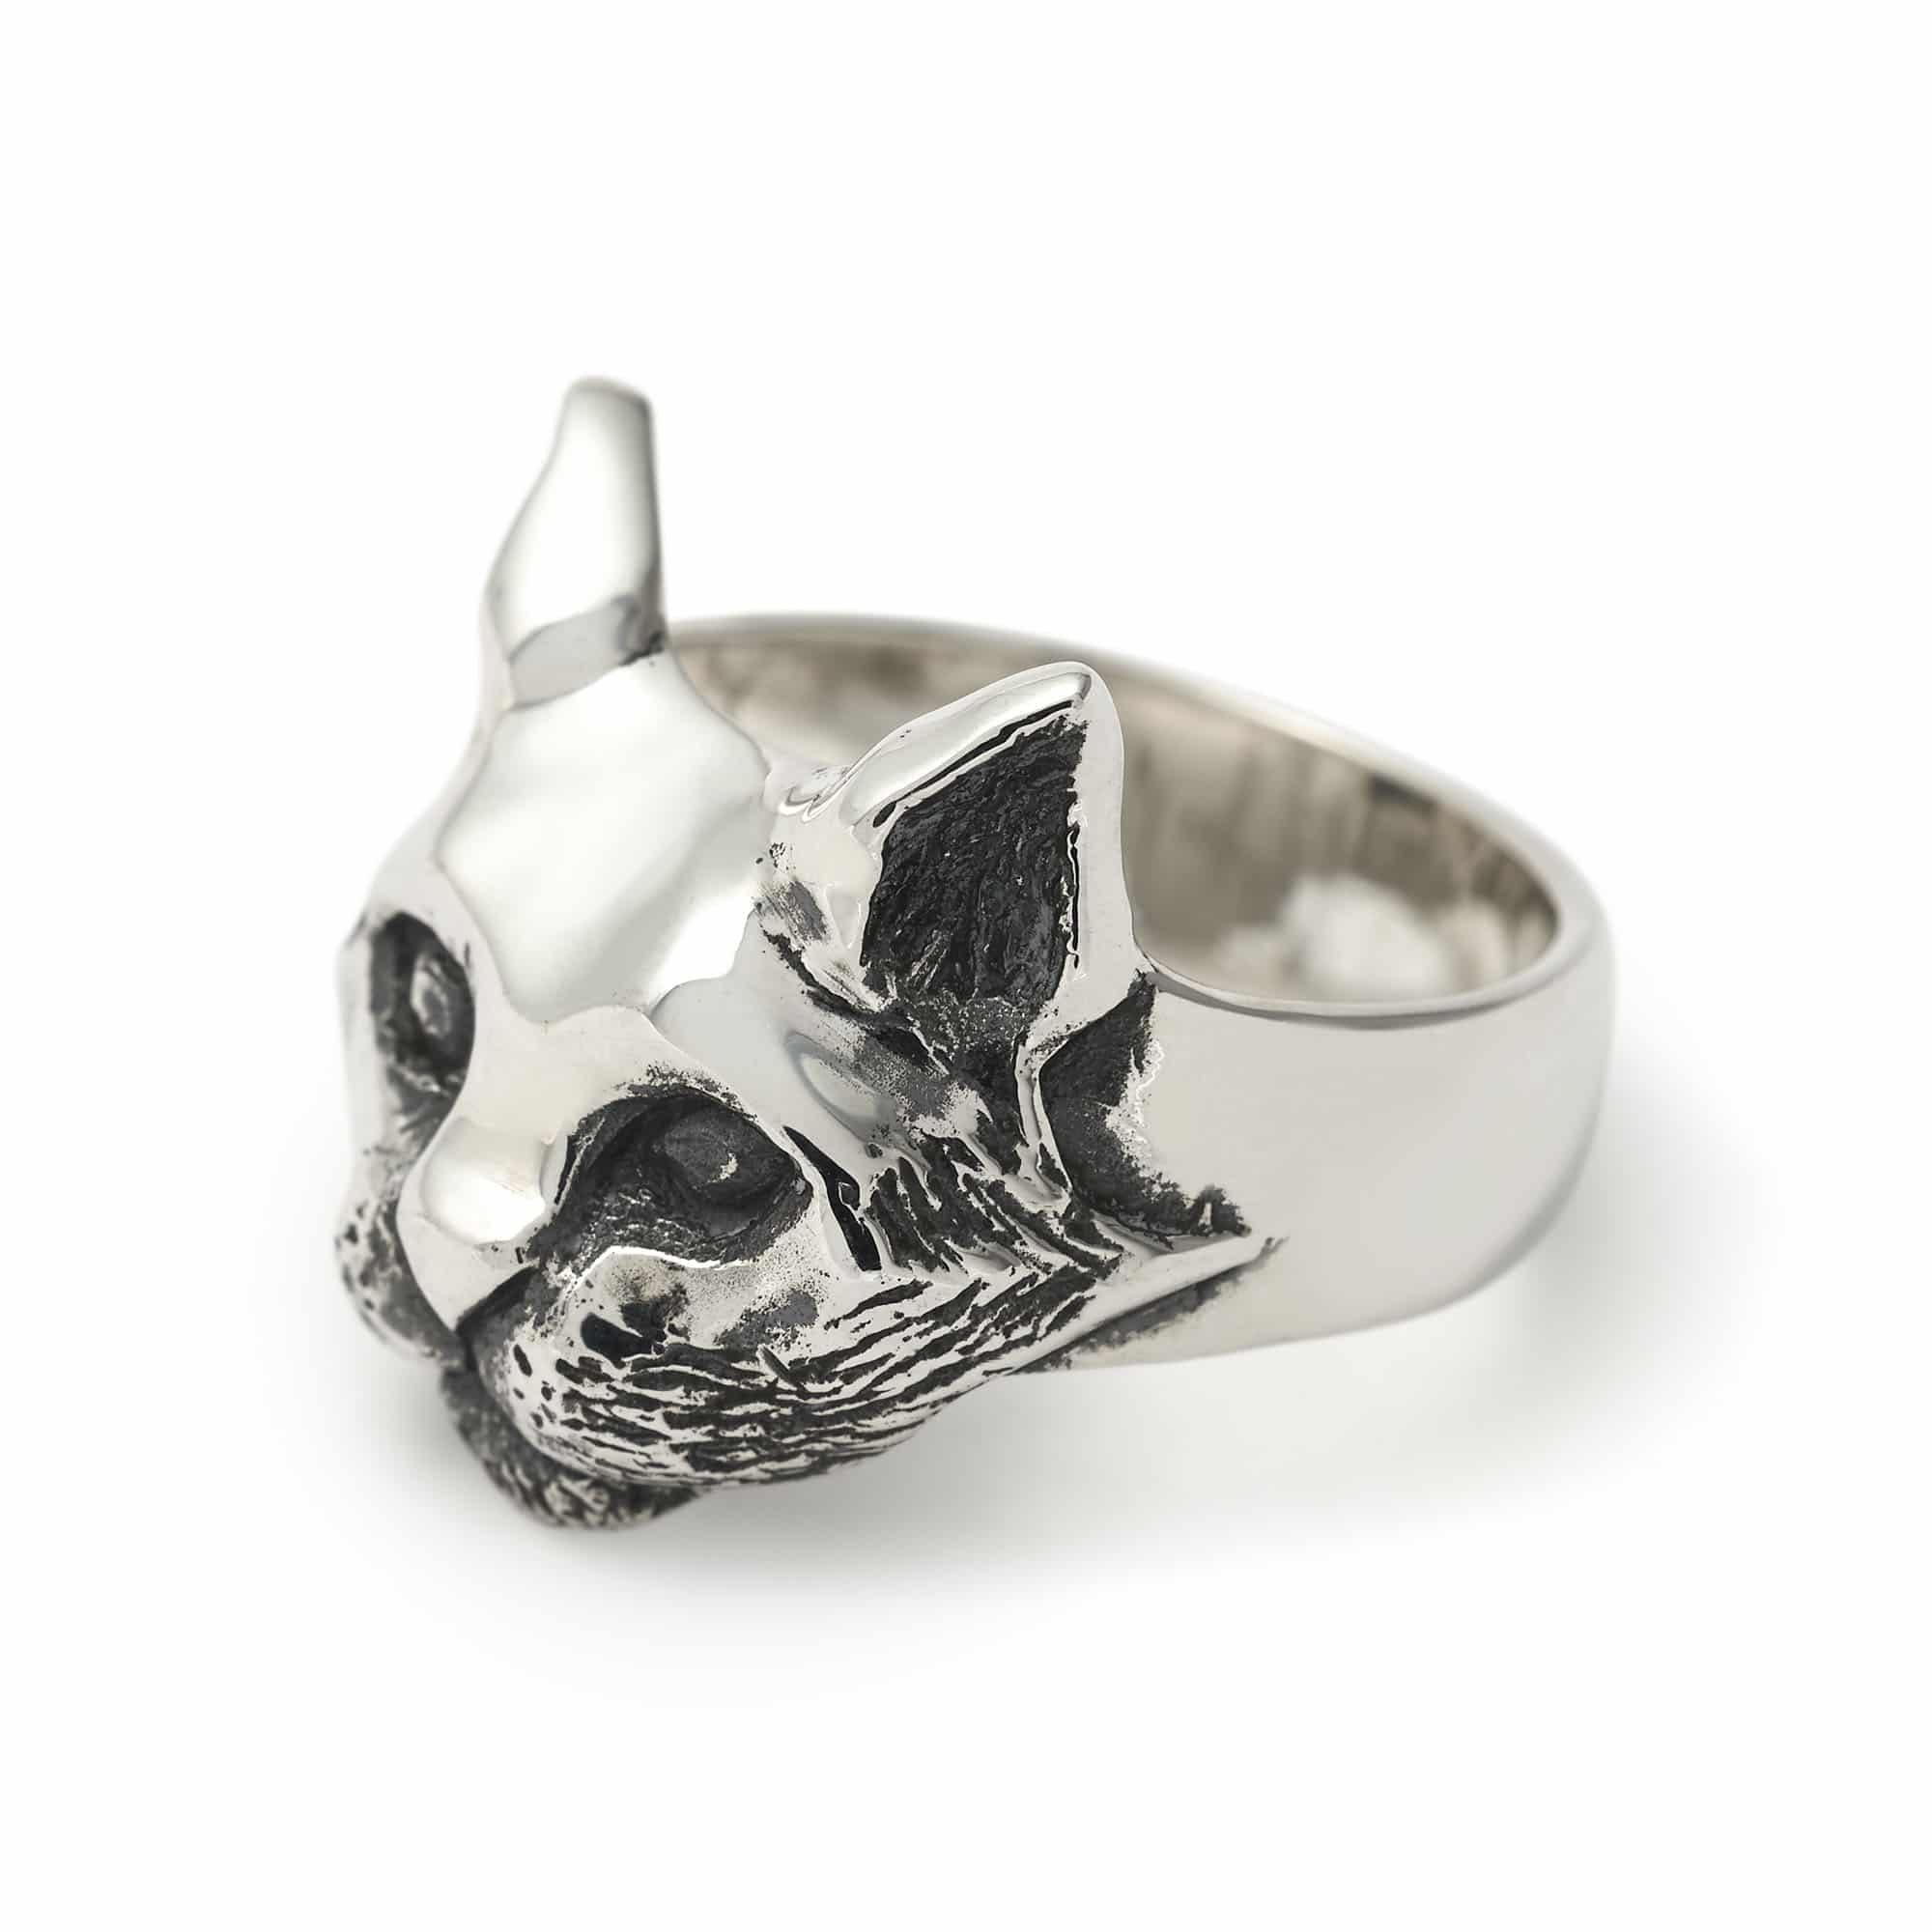 new cute jewelry ring cat for s girl com unique products bijoux storesixtys finger vintage rings women storesixty hot ear